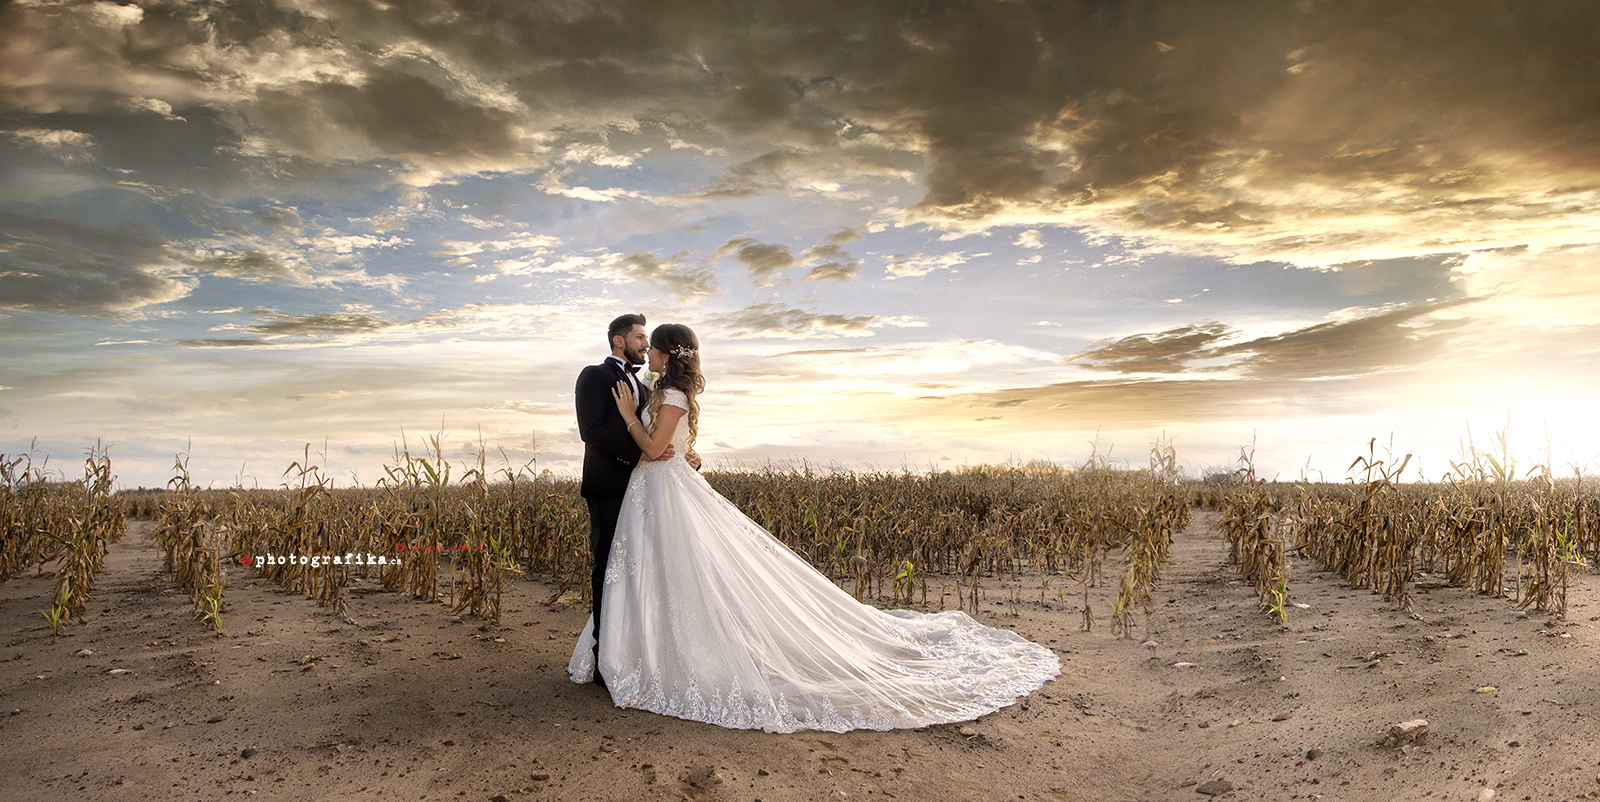 Best pre wedding photographers in bangalore dating 8